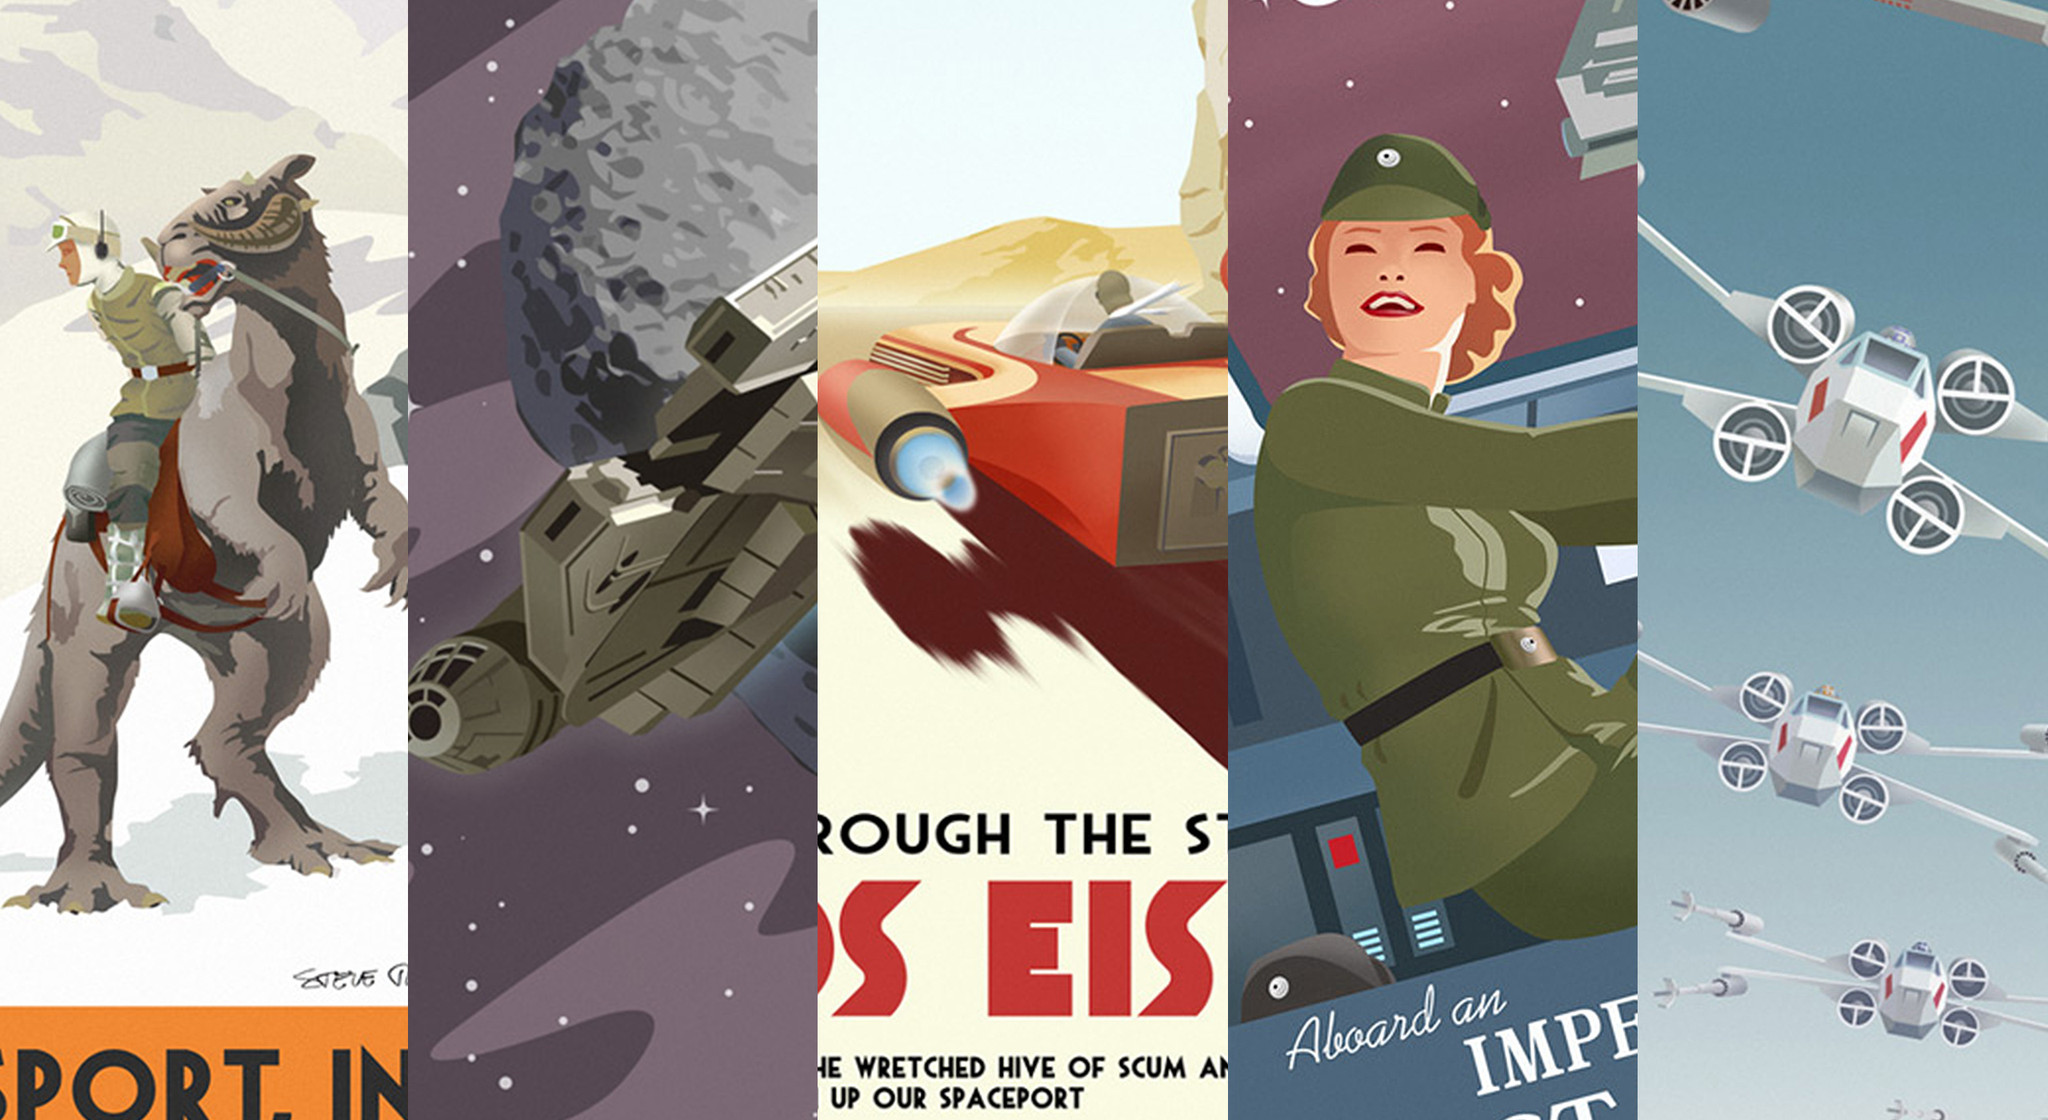 Steve Thomas Star Wars Vintage Travel Art Available Now! - Outer Rim ...